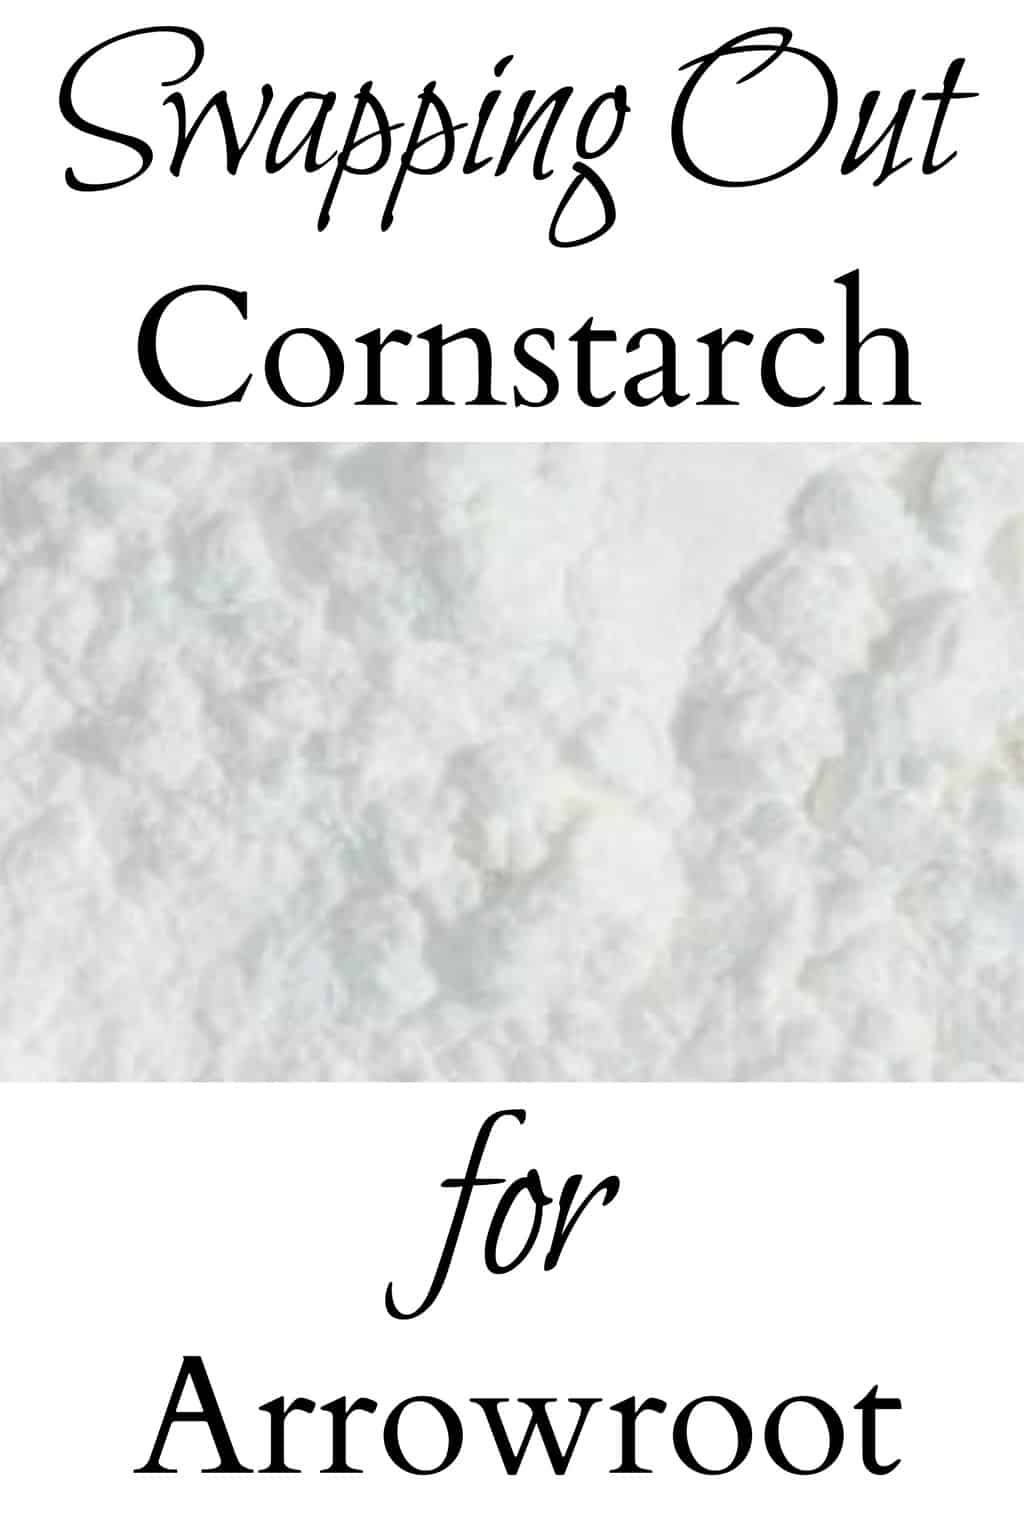 Swapping Out Cornstarch for Arrowroot - learn why you might want to ditch cornstarch and why arrowroot makes a great alternative